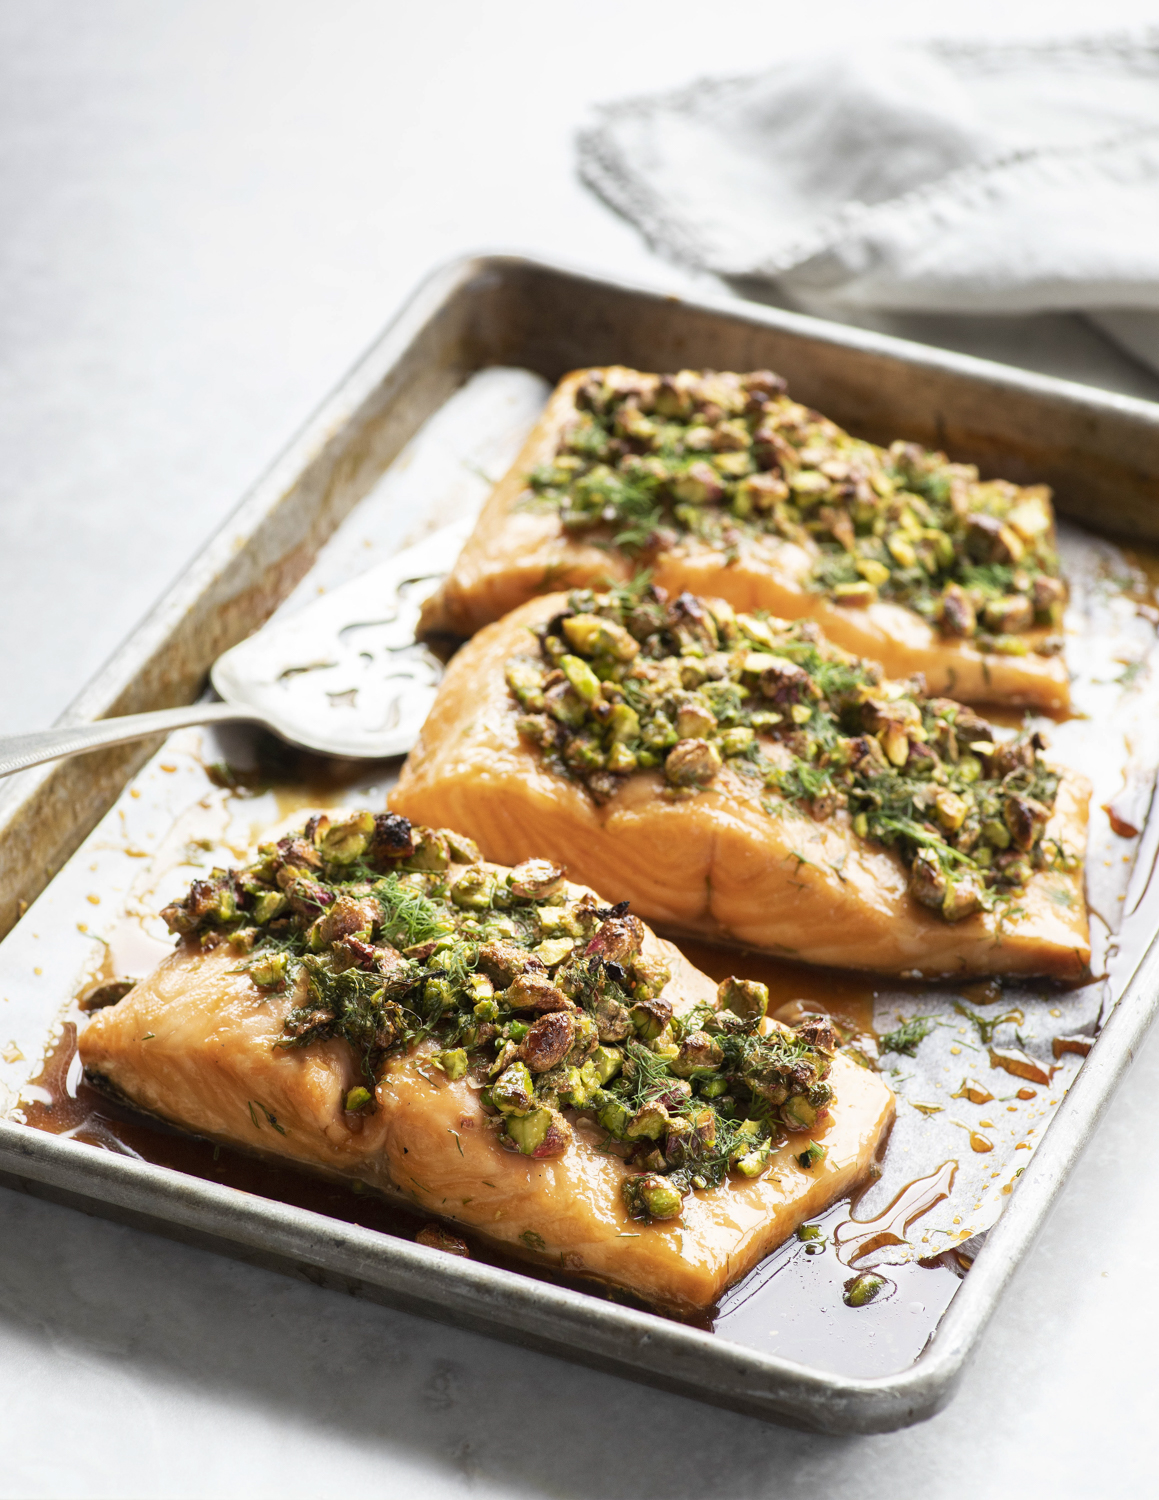 Pistachio crusted salmon MichelleCola_selects_day4_ATarr-3-.jpg